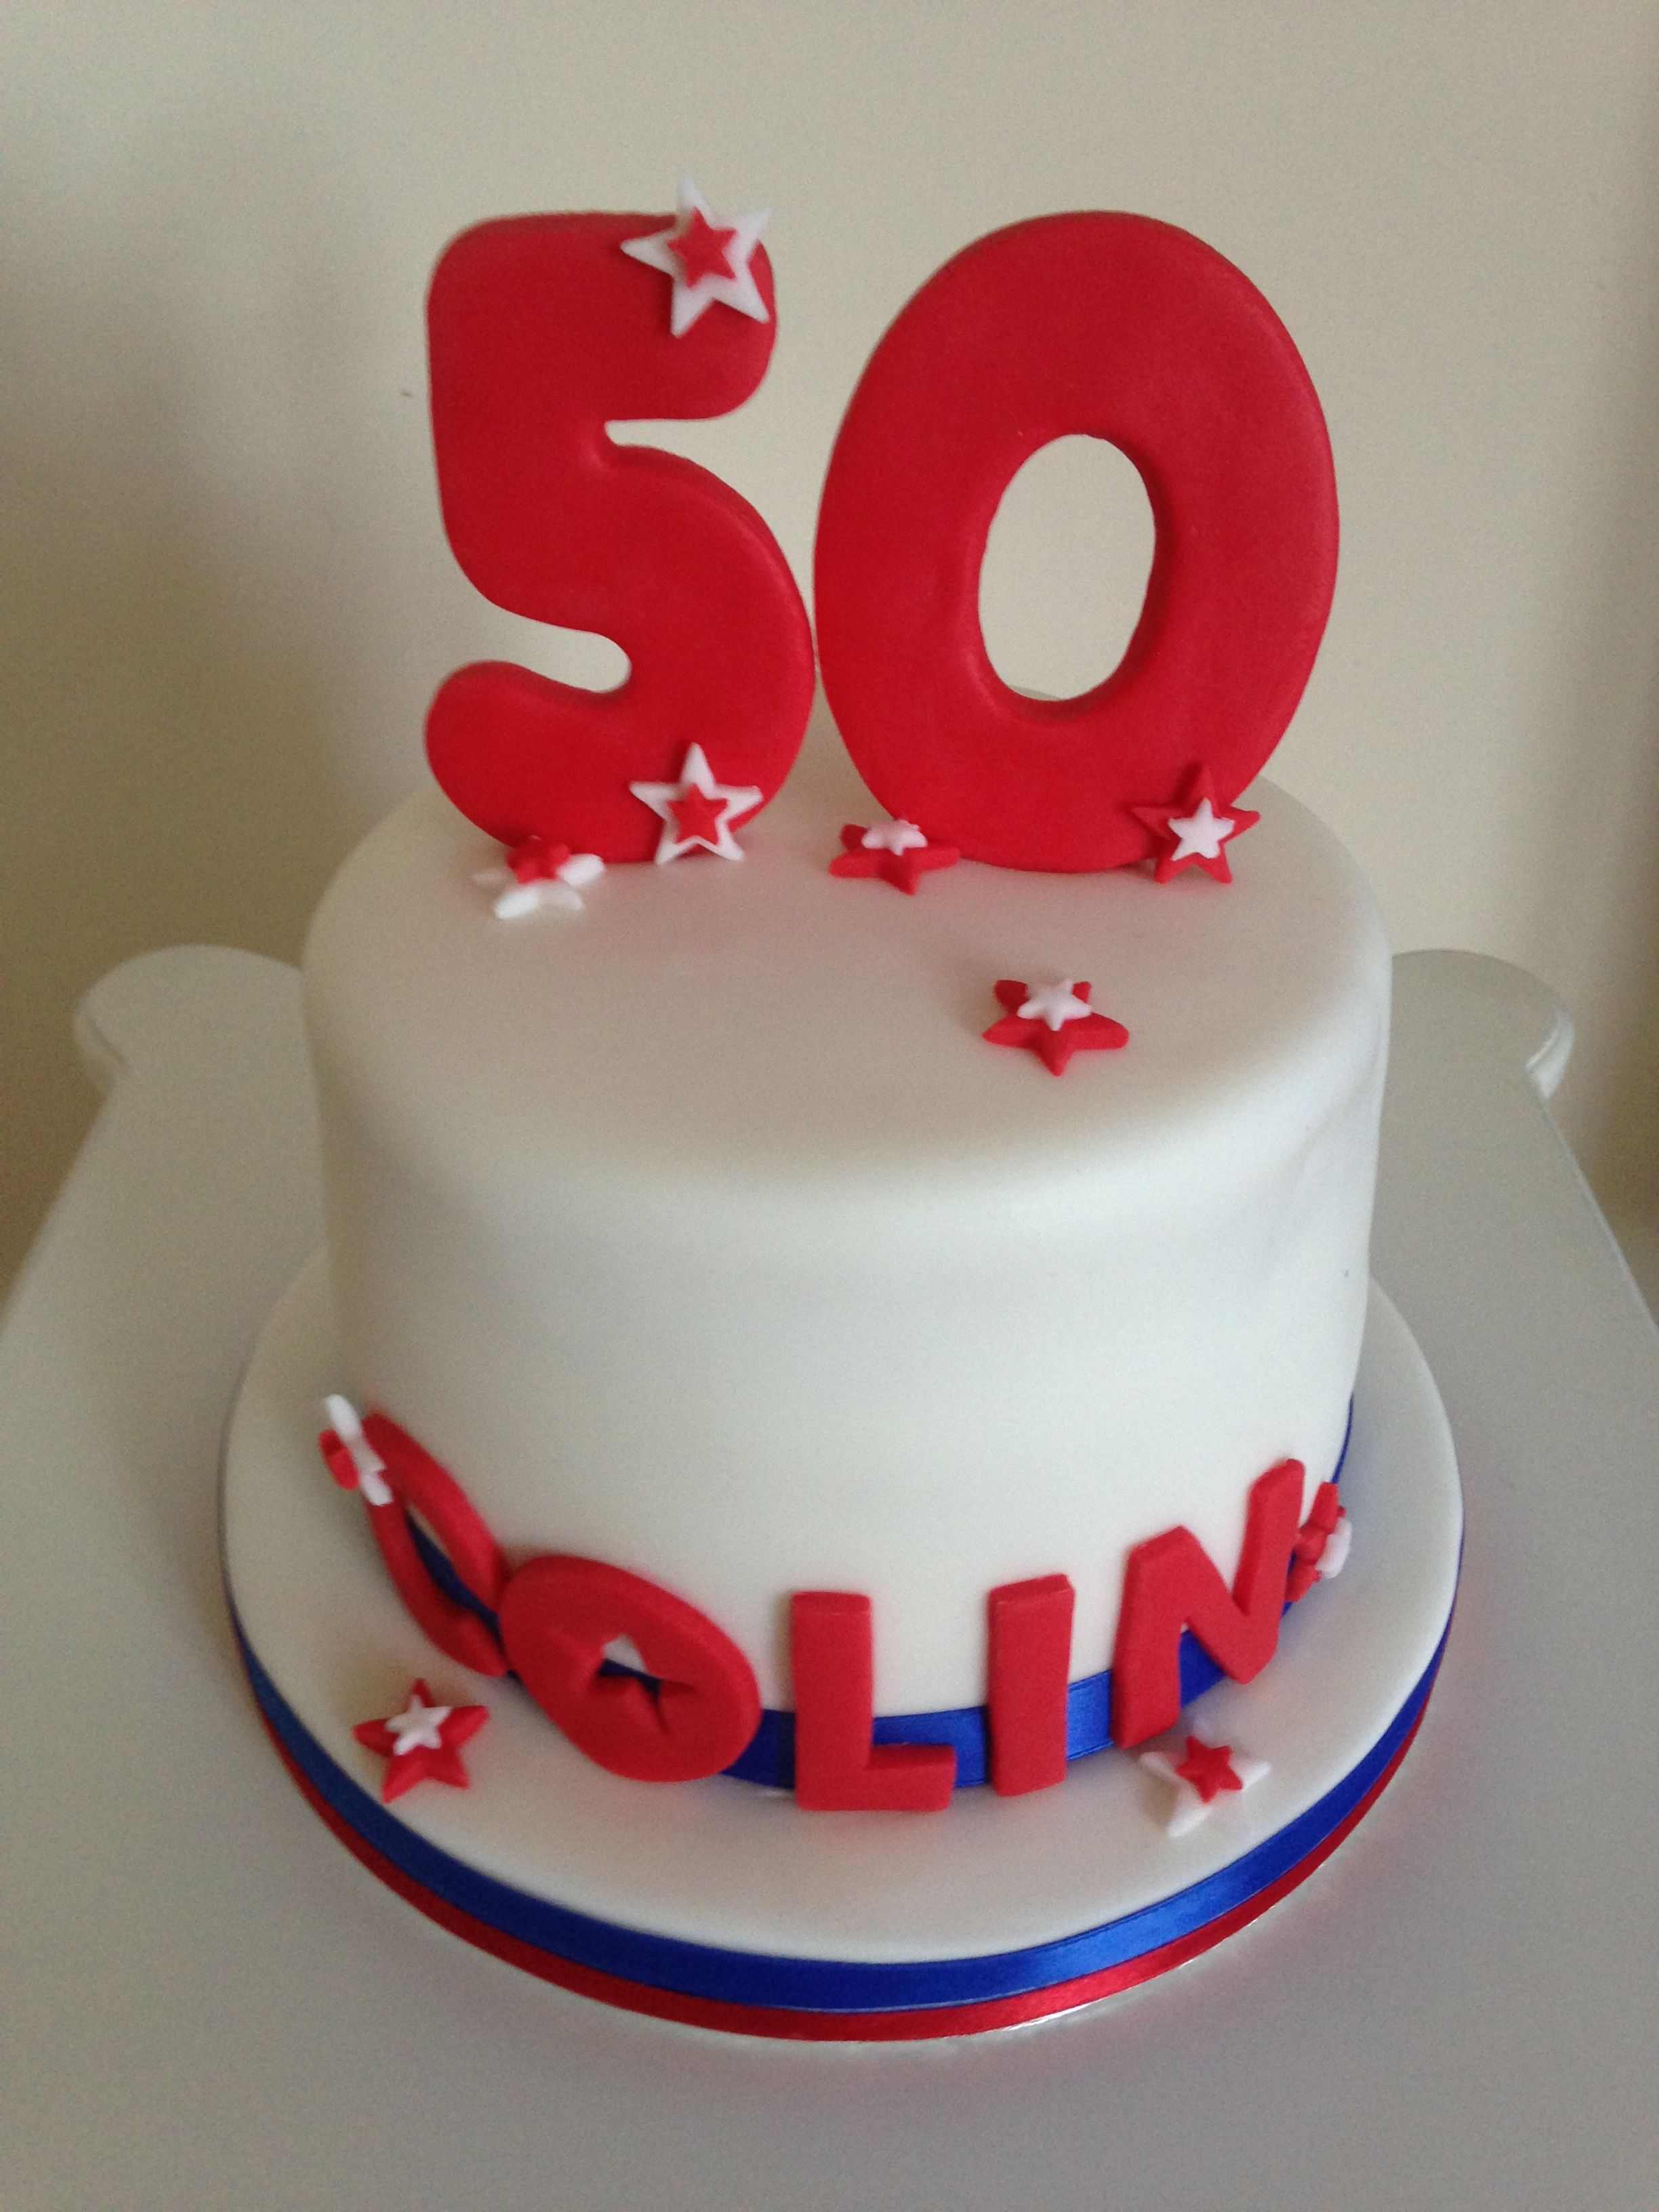 Happy 50th Birthday Colin Hope You Had A Great Day